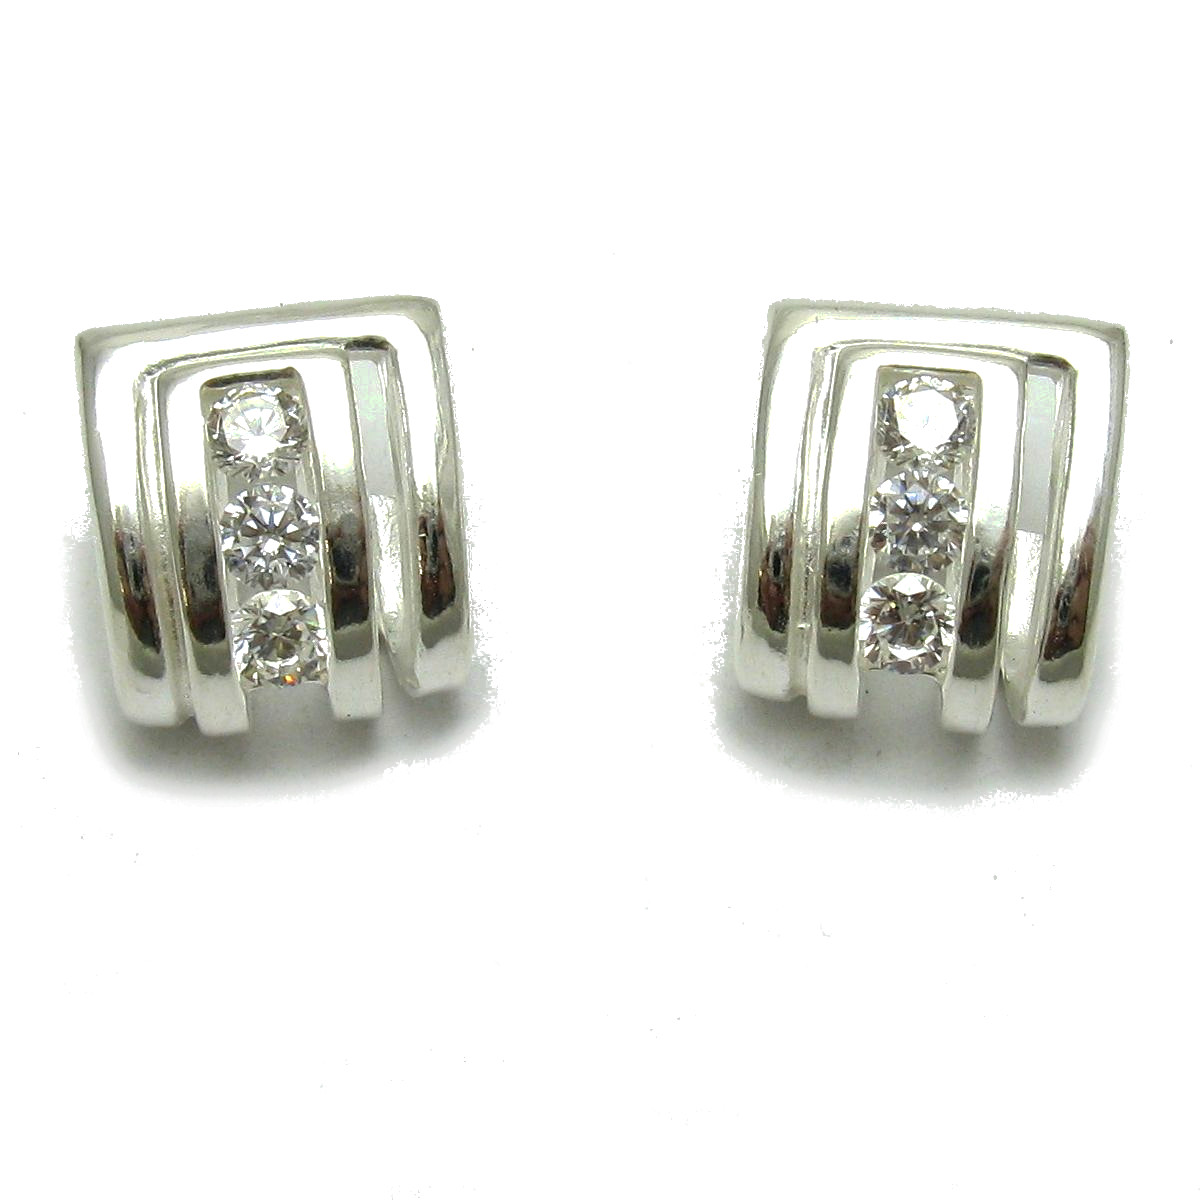 Silver earrings - E000695